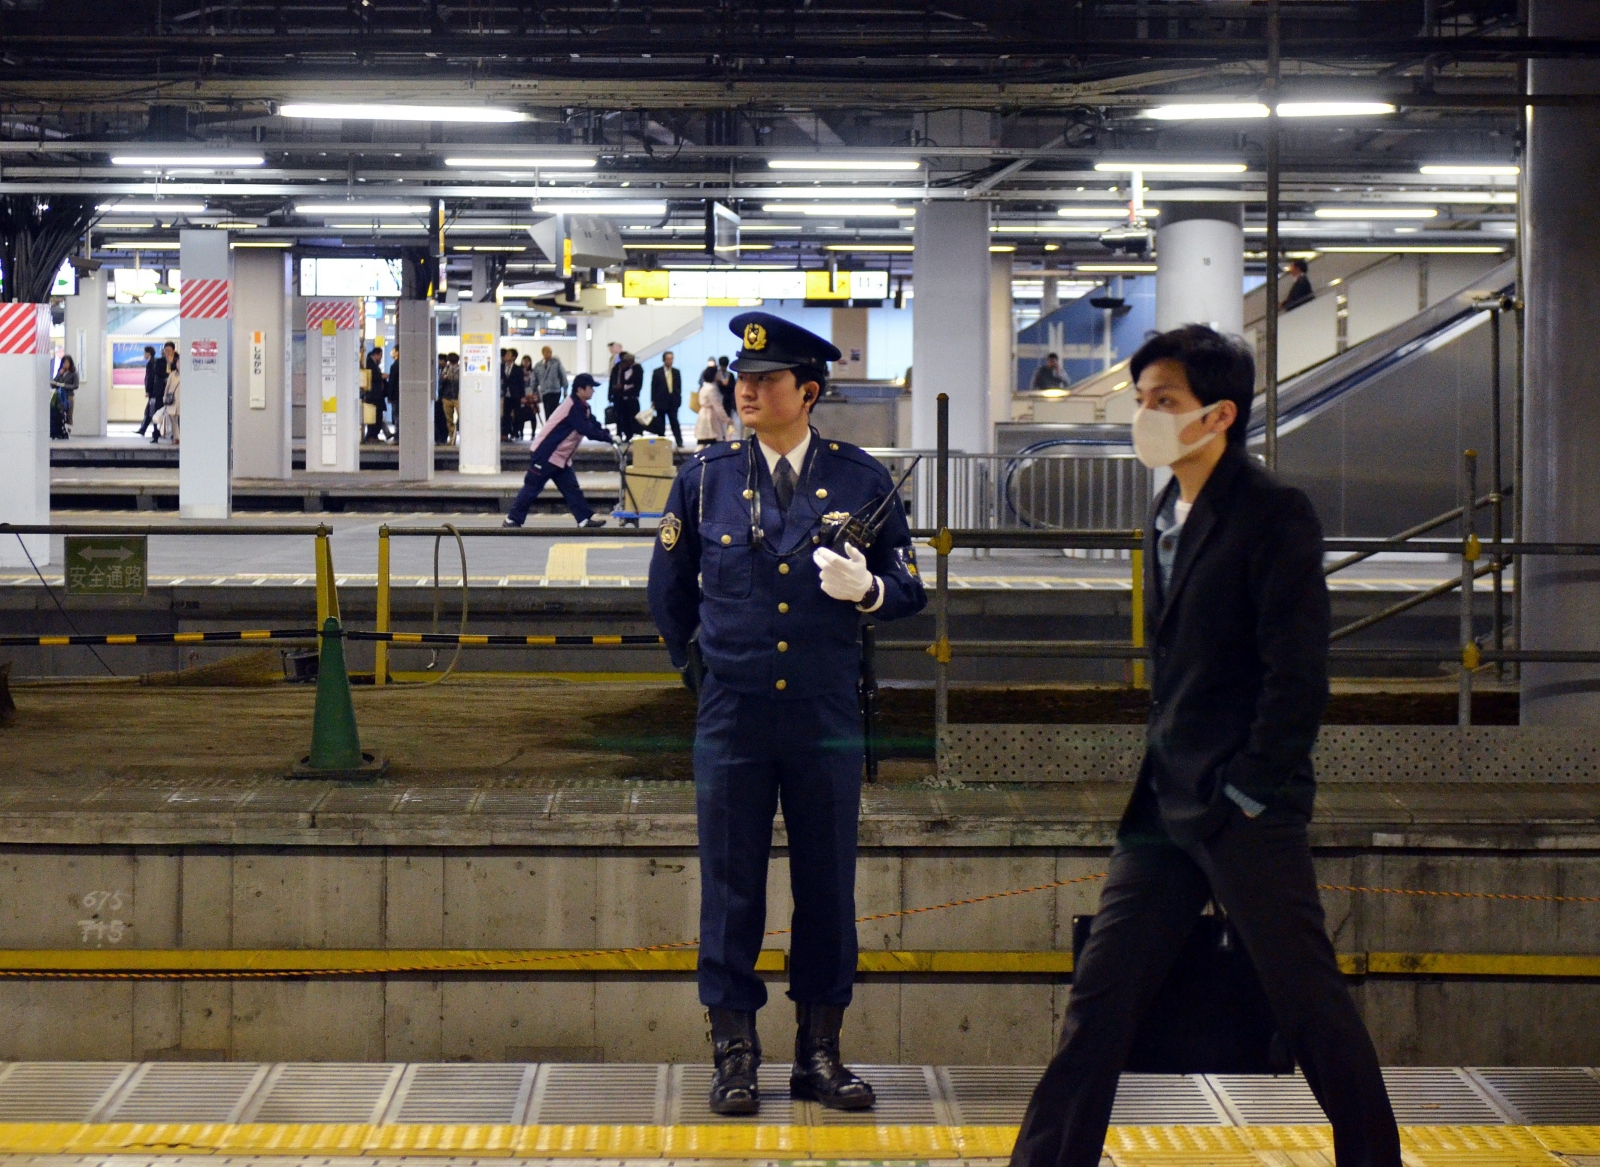 A police officer stands guard at a train station in Tokyo.